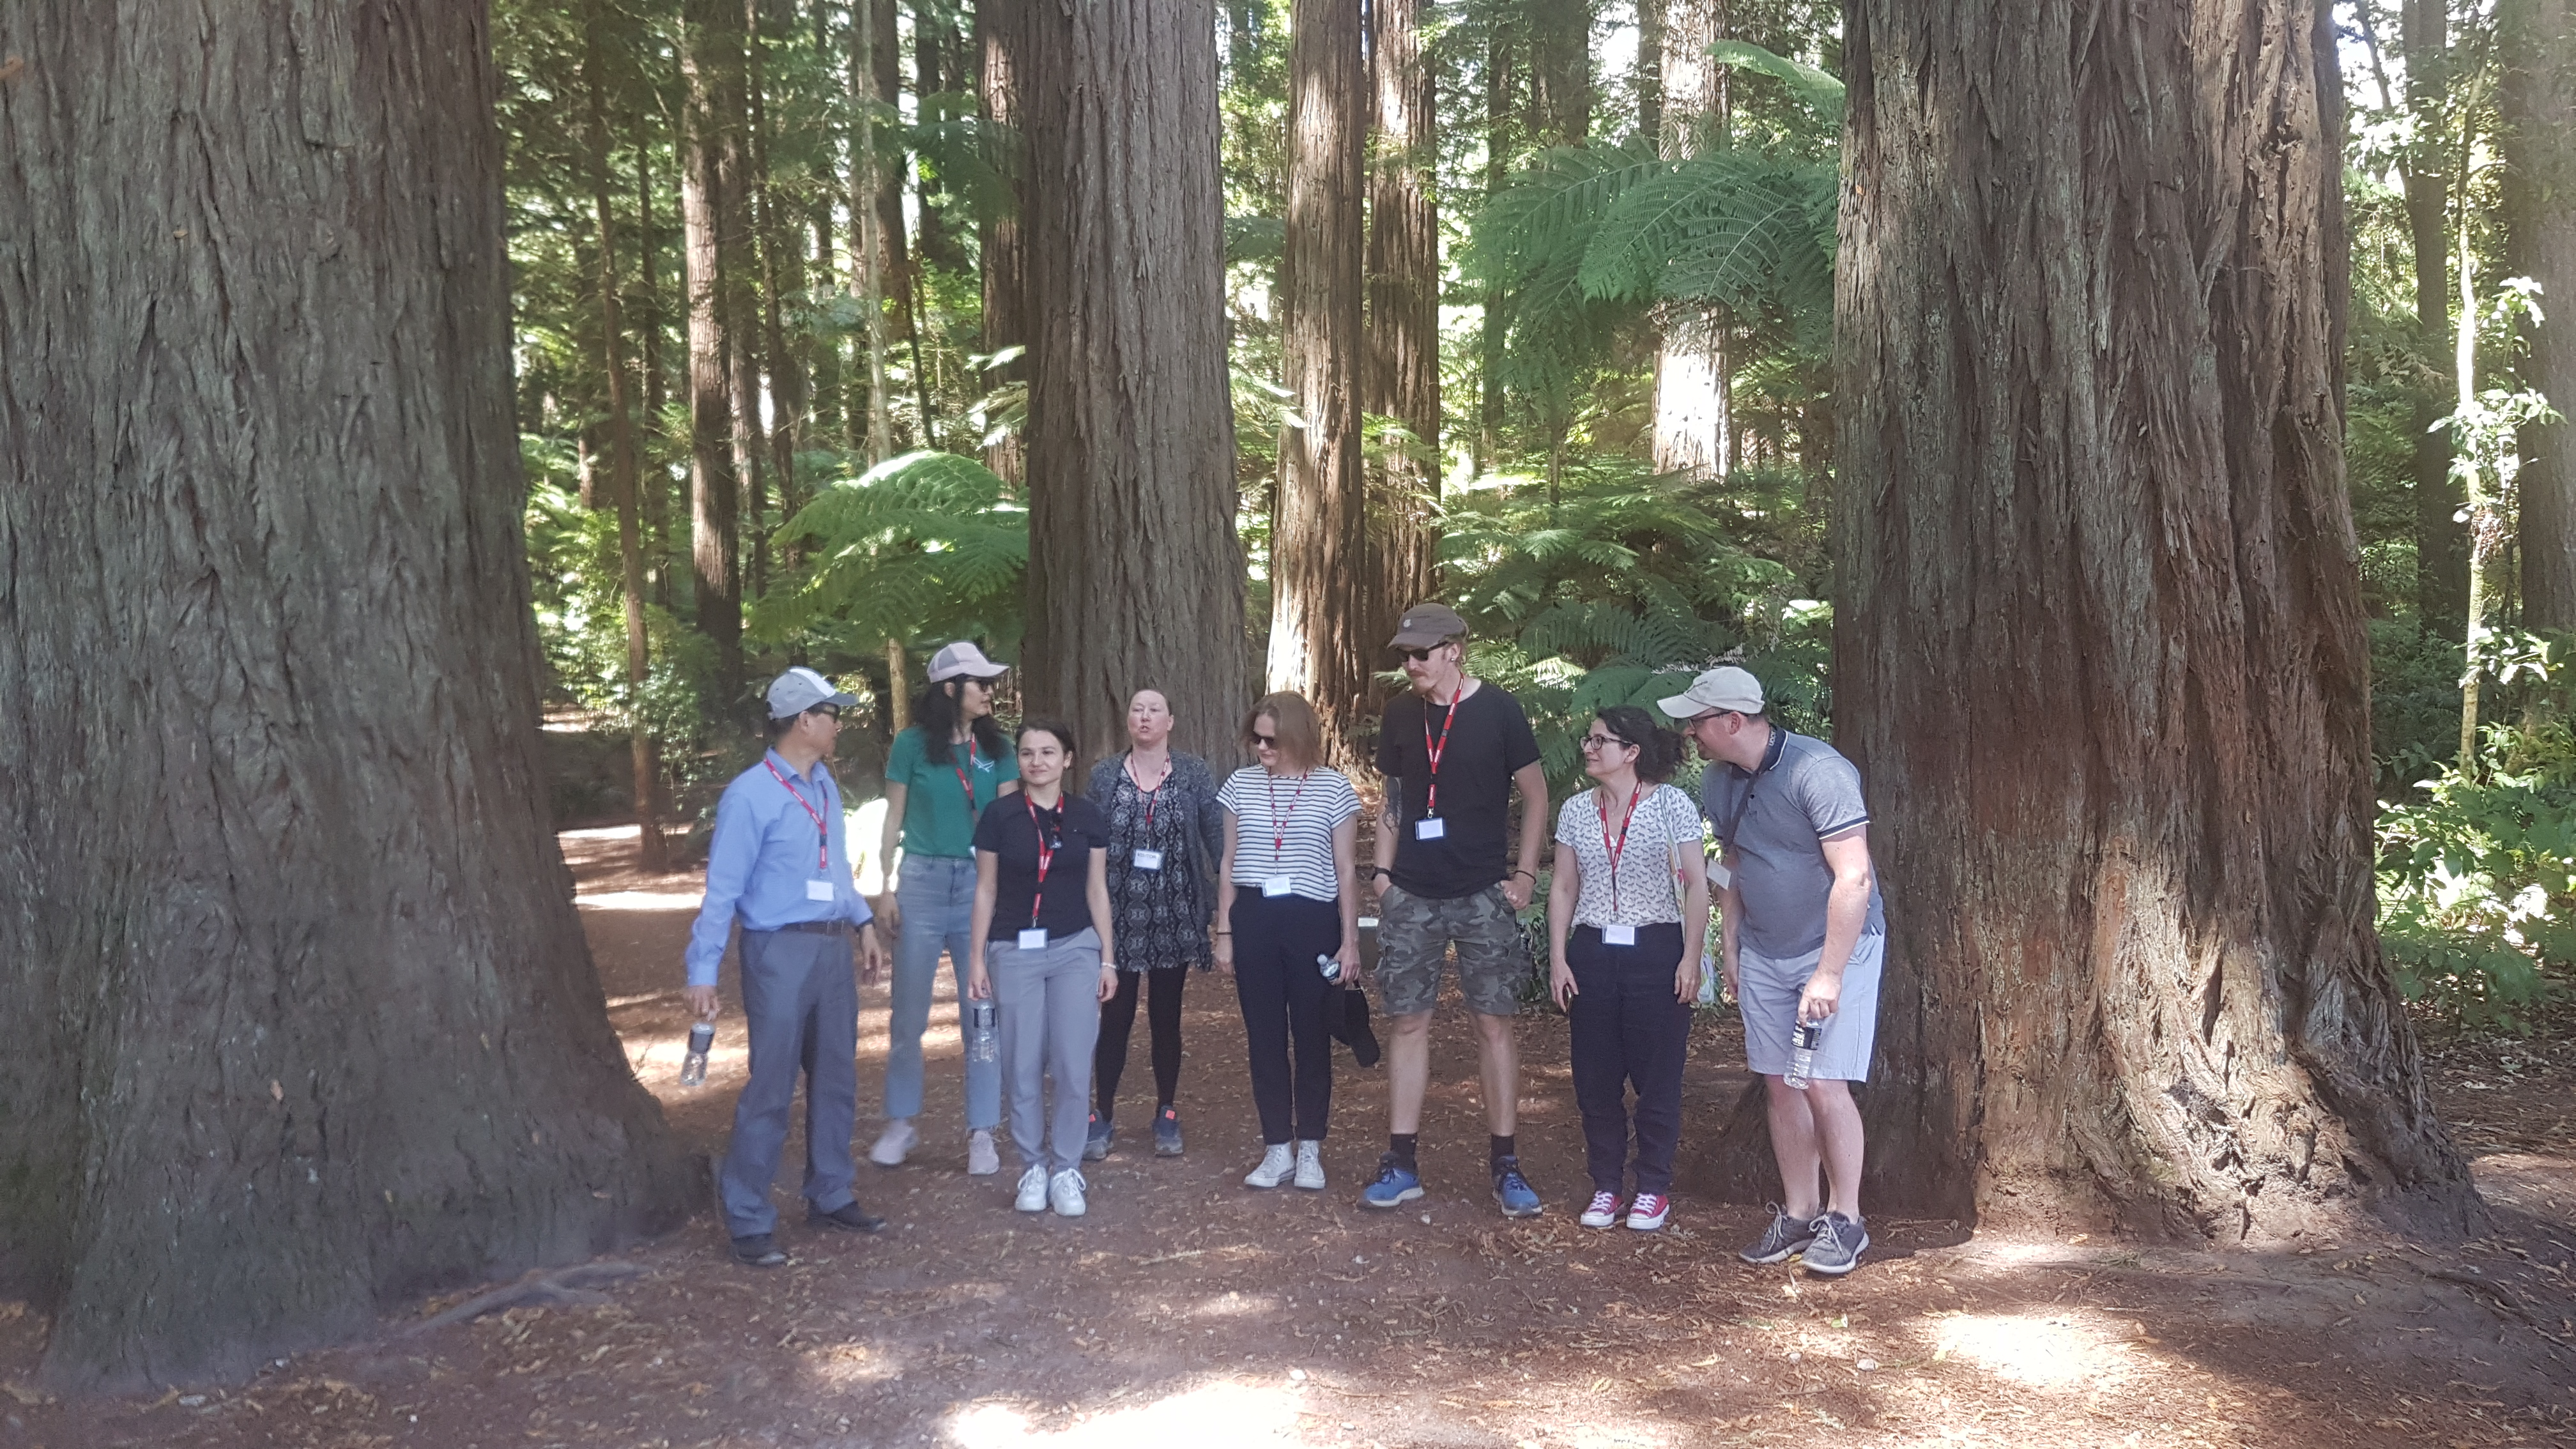 Confused assembling in redwoods at SCION